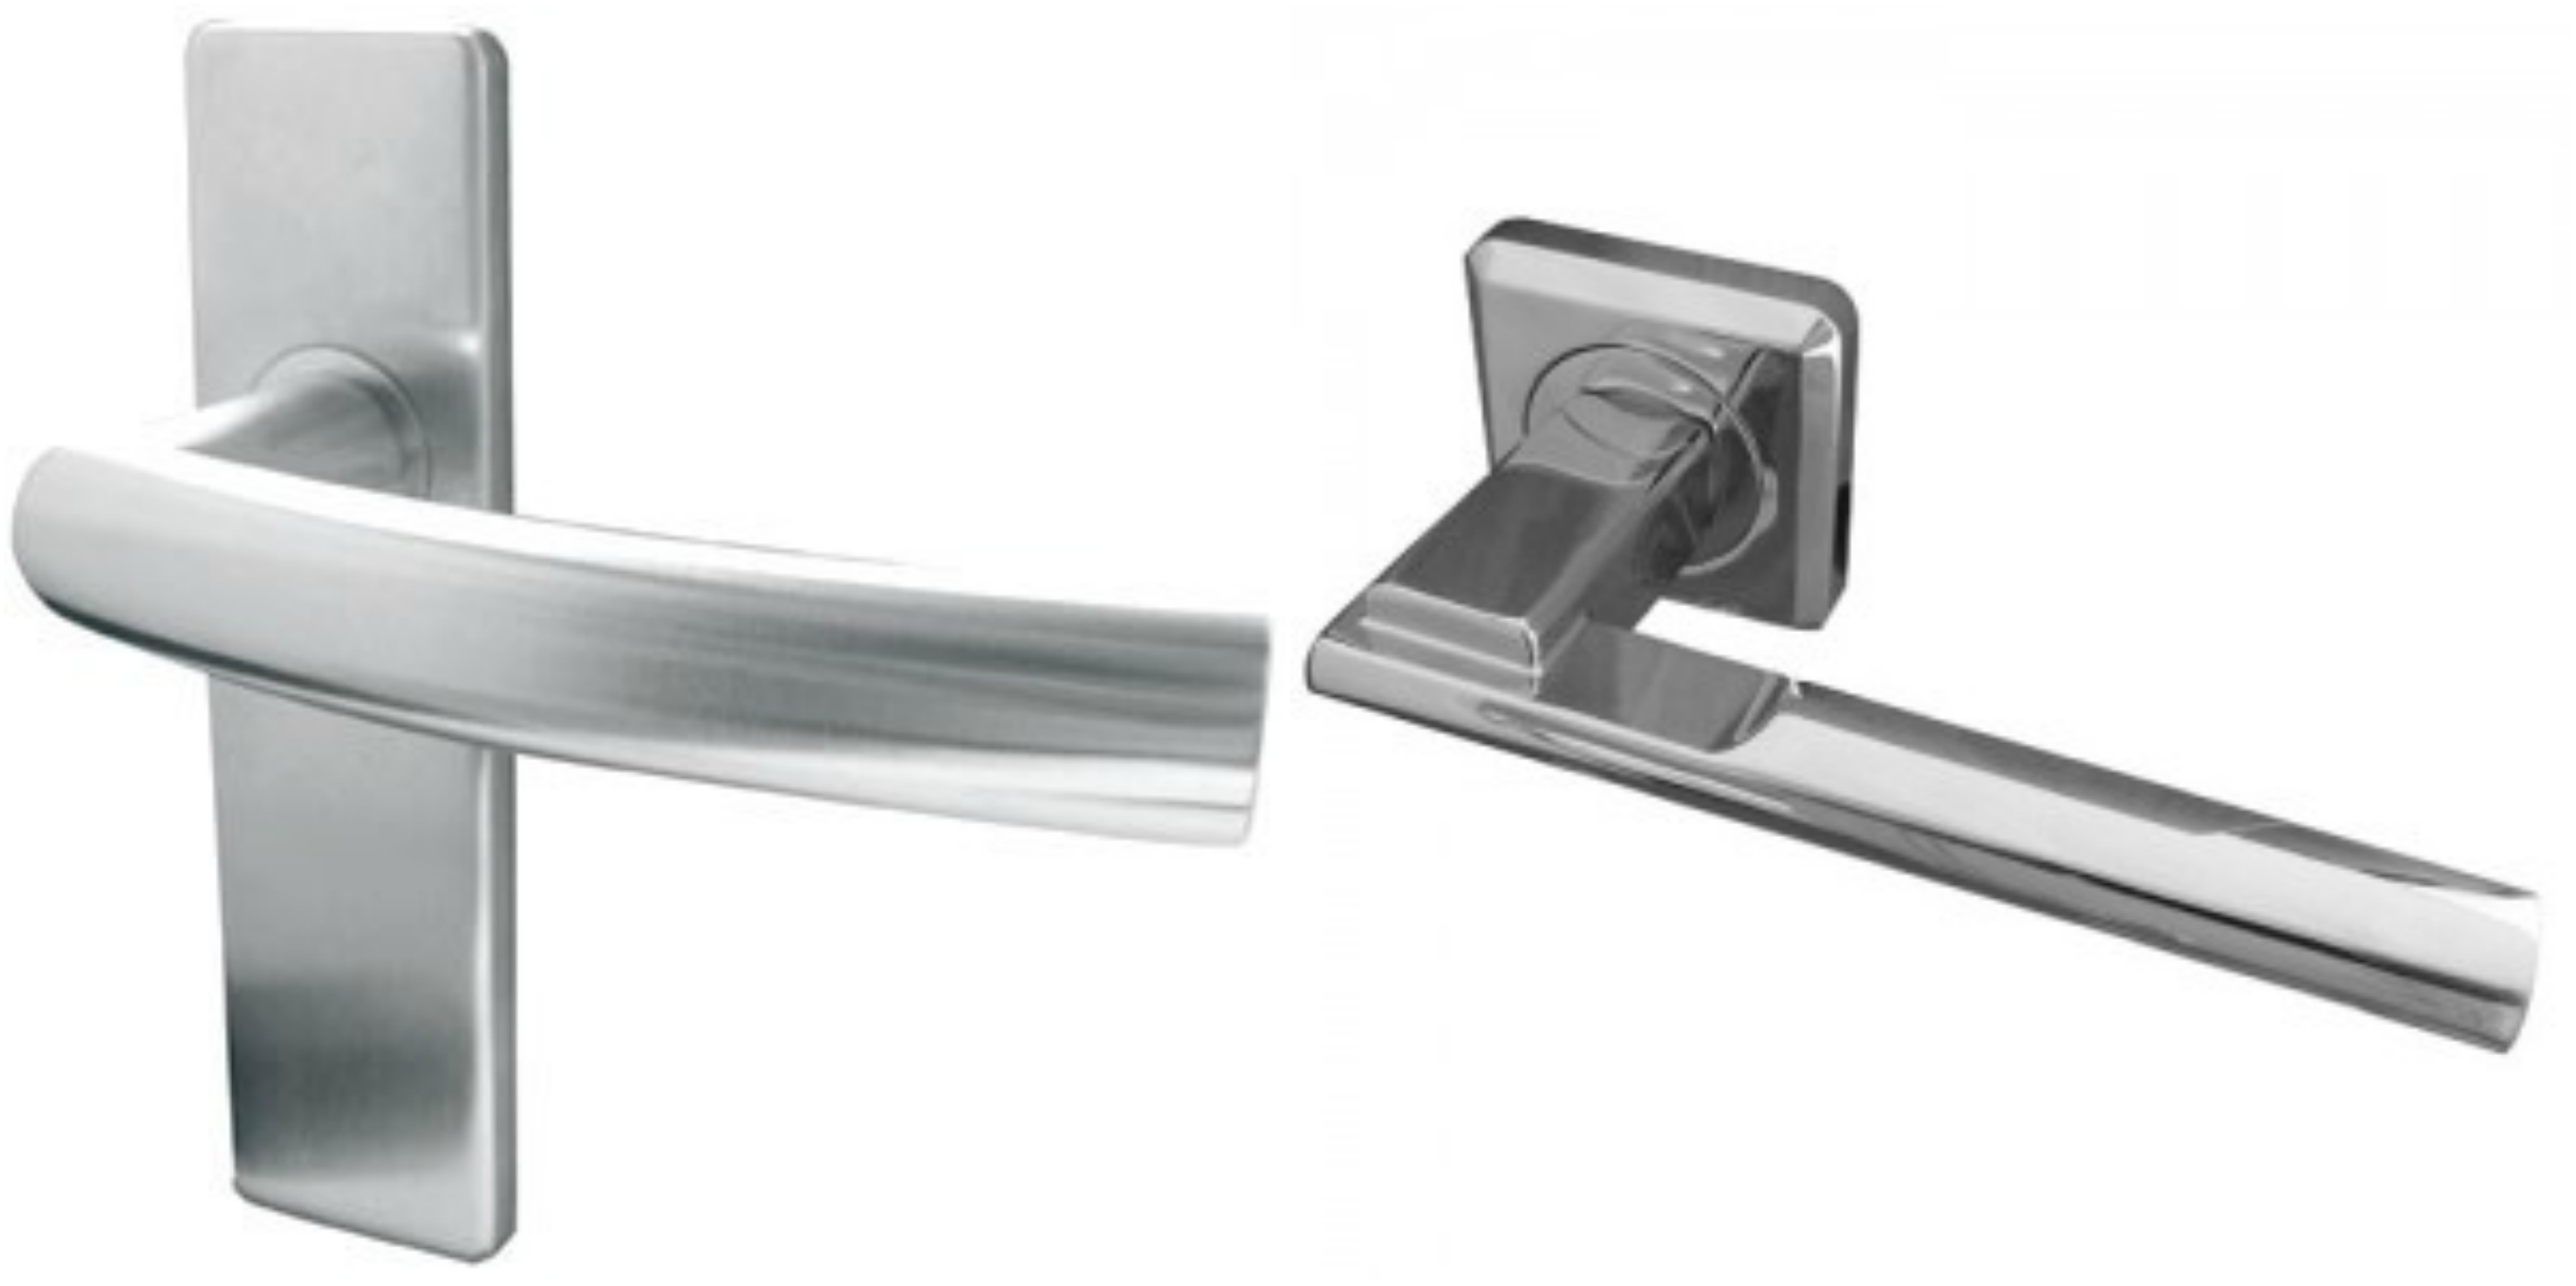 shiny stainless steel door handles